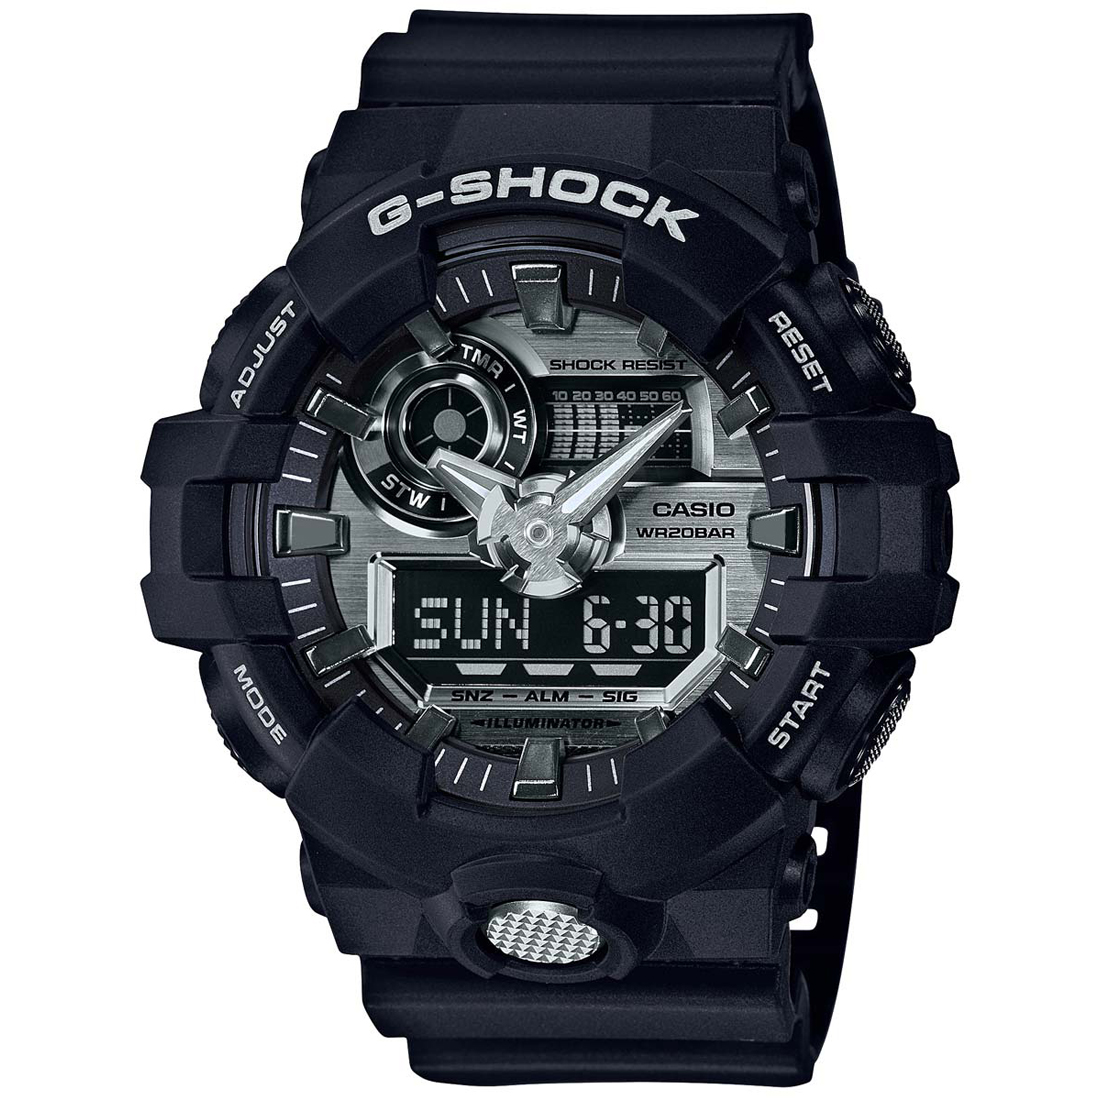 G738 GA-710-1ADR G-SHOCK WATCH-G738